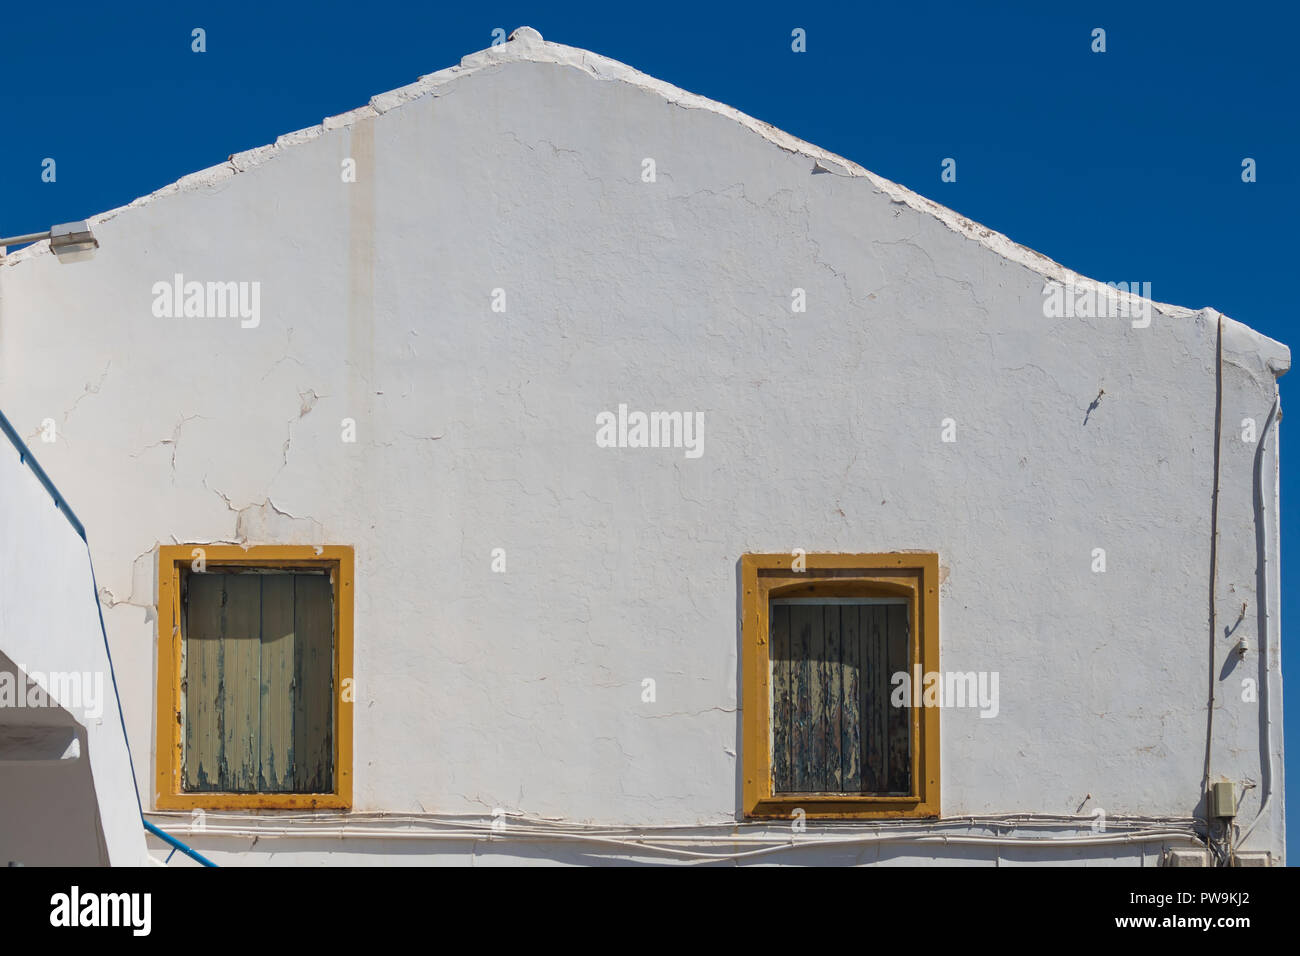 Building with a bright white older facade. Two windows with yellow ...